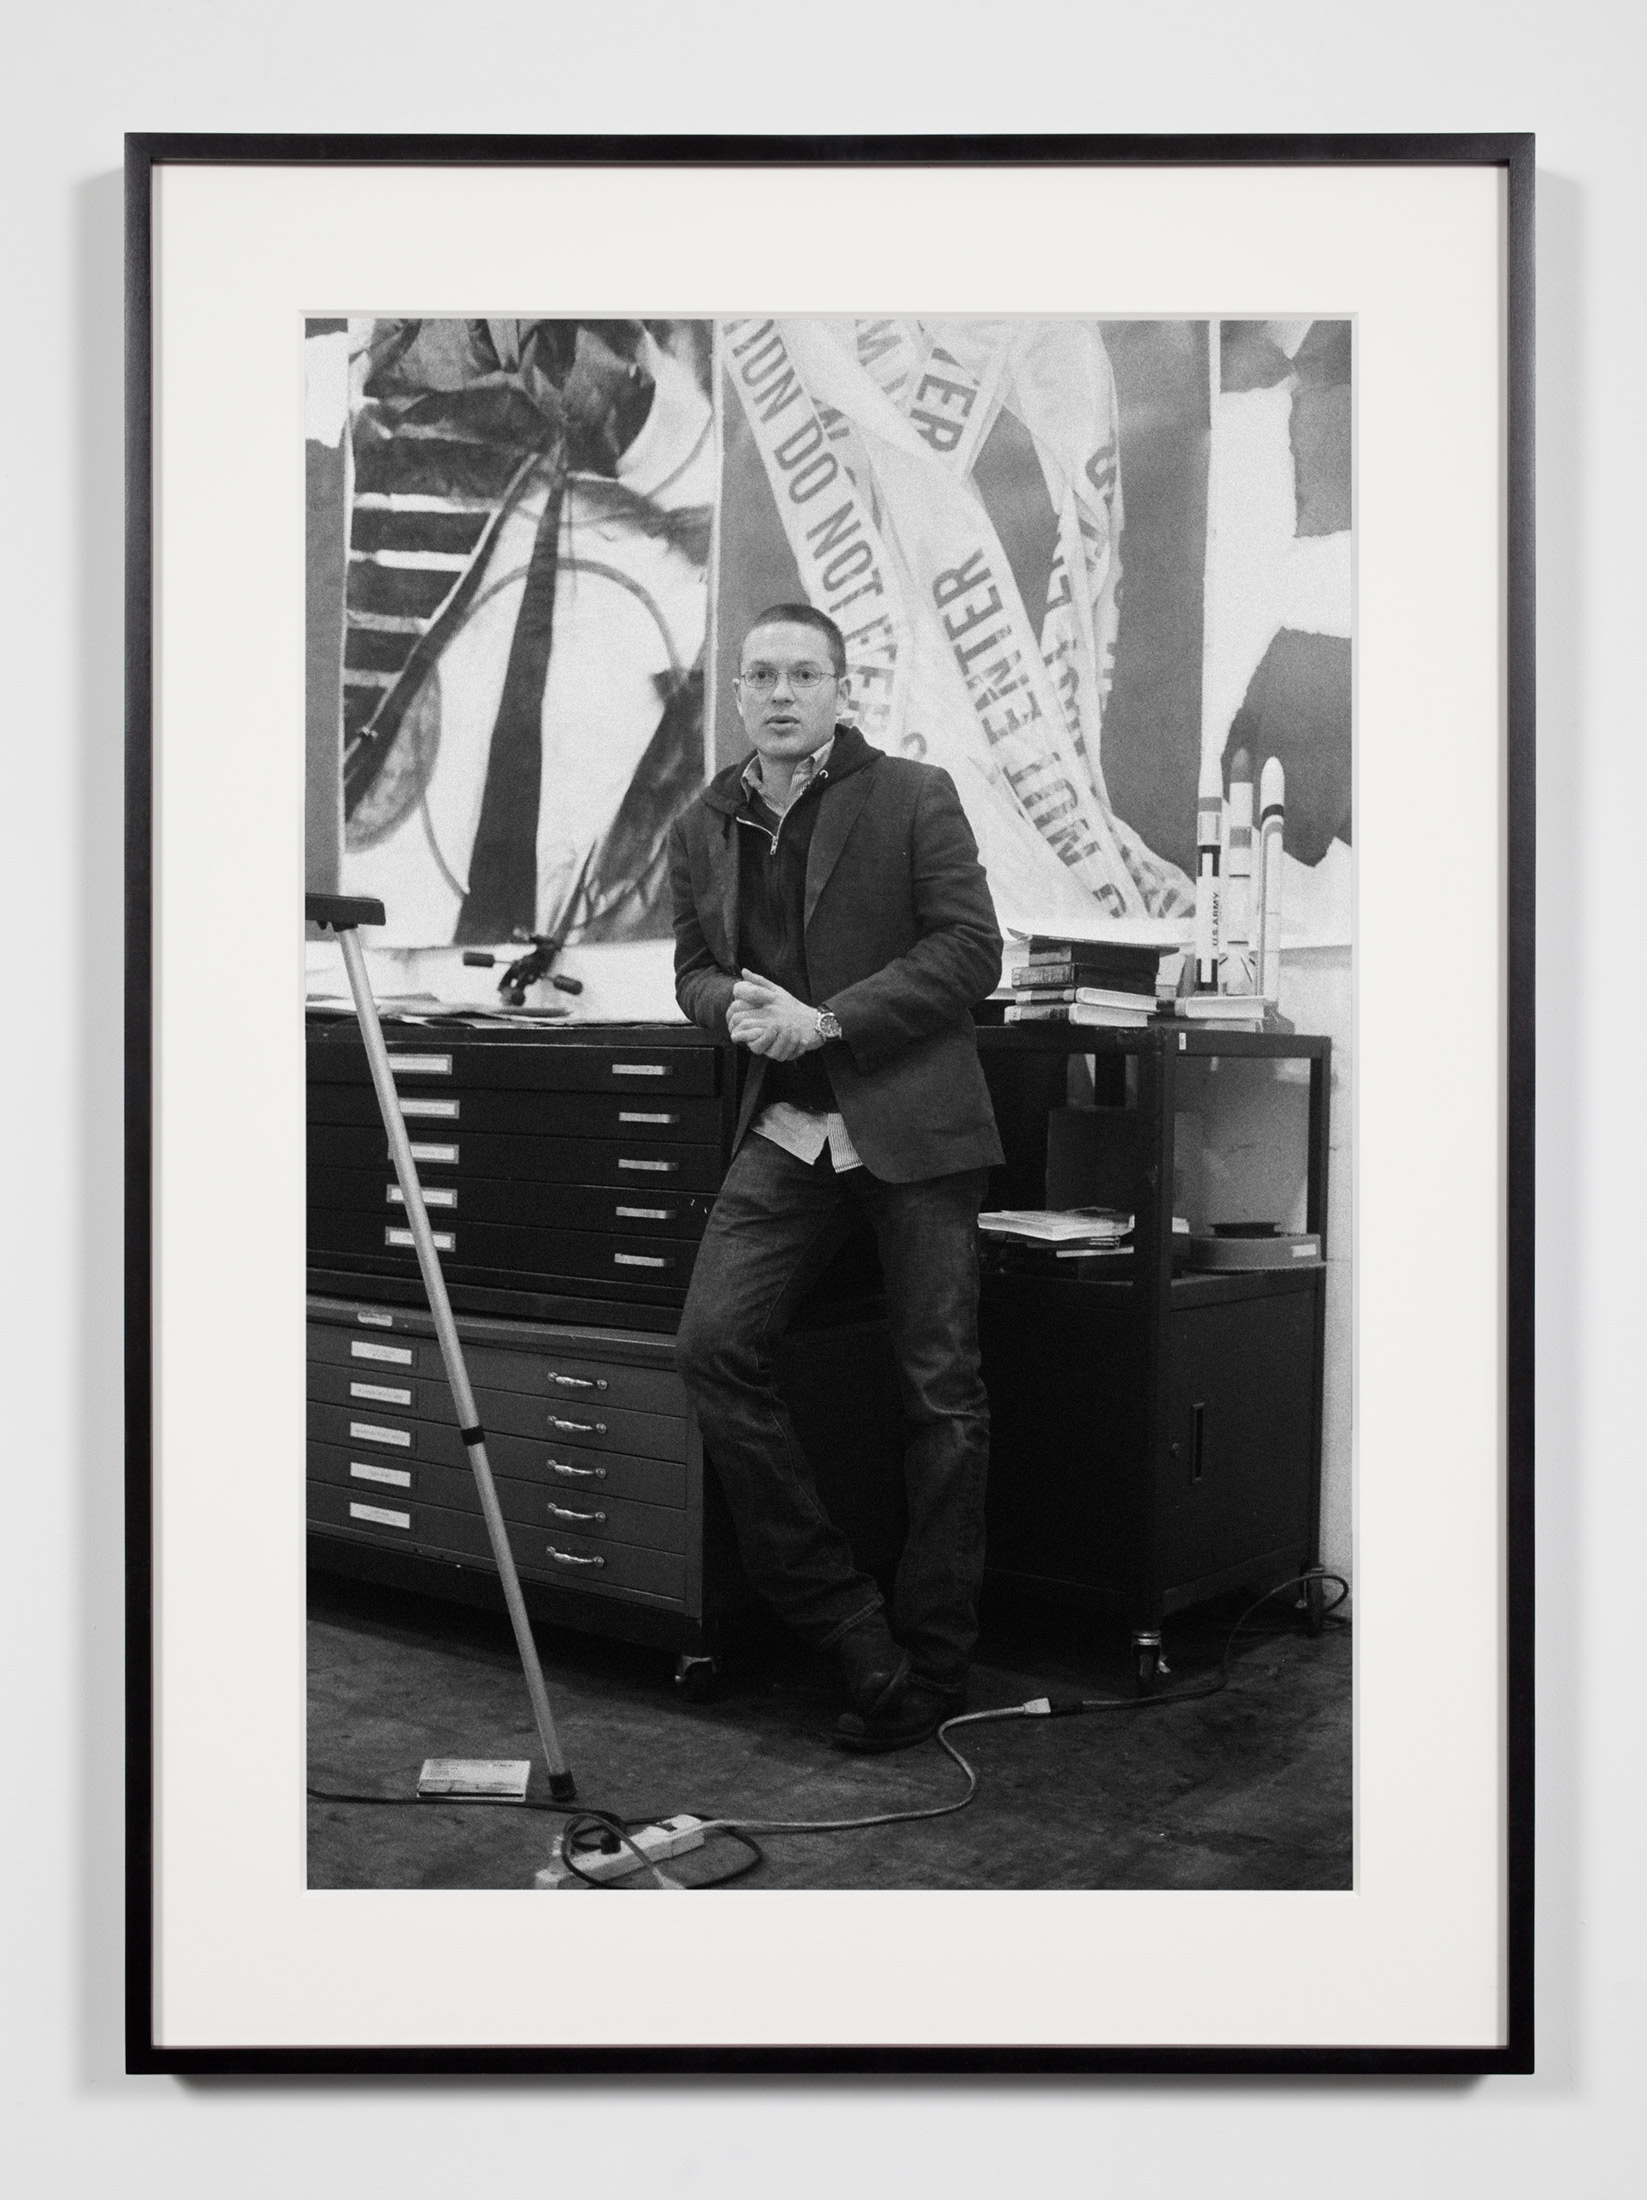 Artist (KFH), Los Angeles, California, February 8, 2009    2009   Epson Ultrachrome K3 archival ink jet print on Hahnemühle Photo Rag paper  36 3/8 x 26 3/8 inches   Industrial Portraits, 2008–